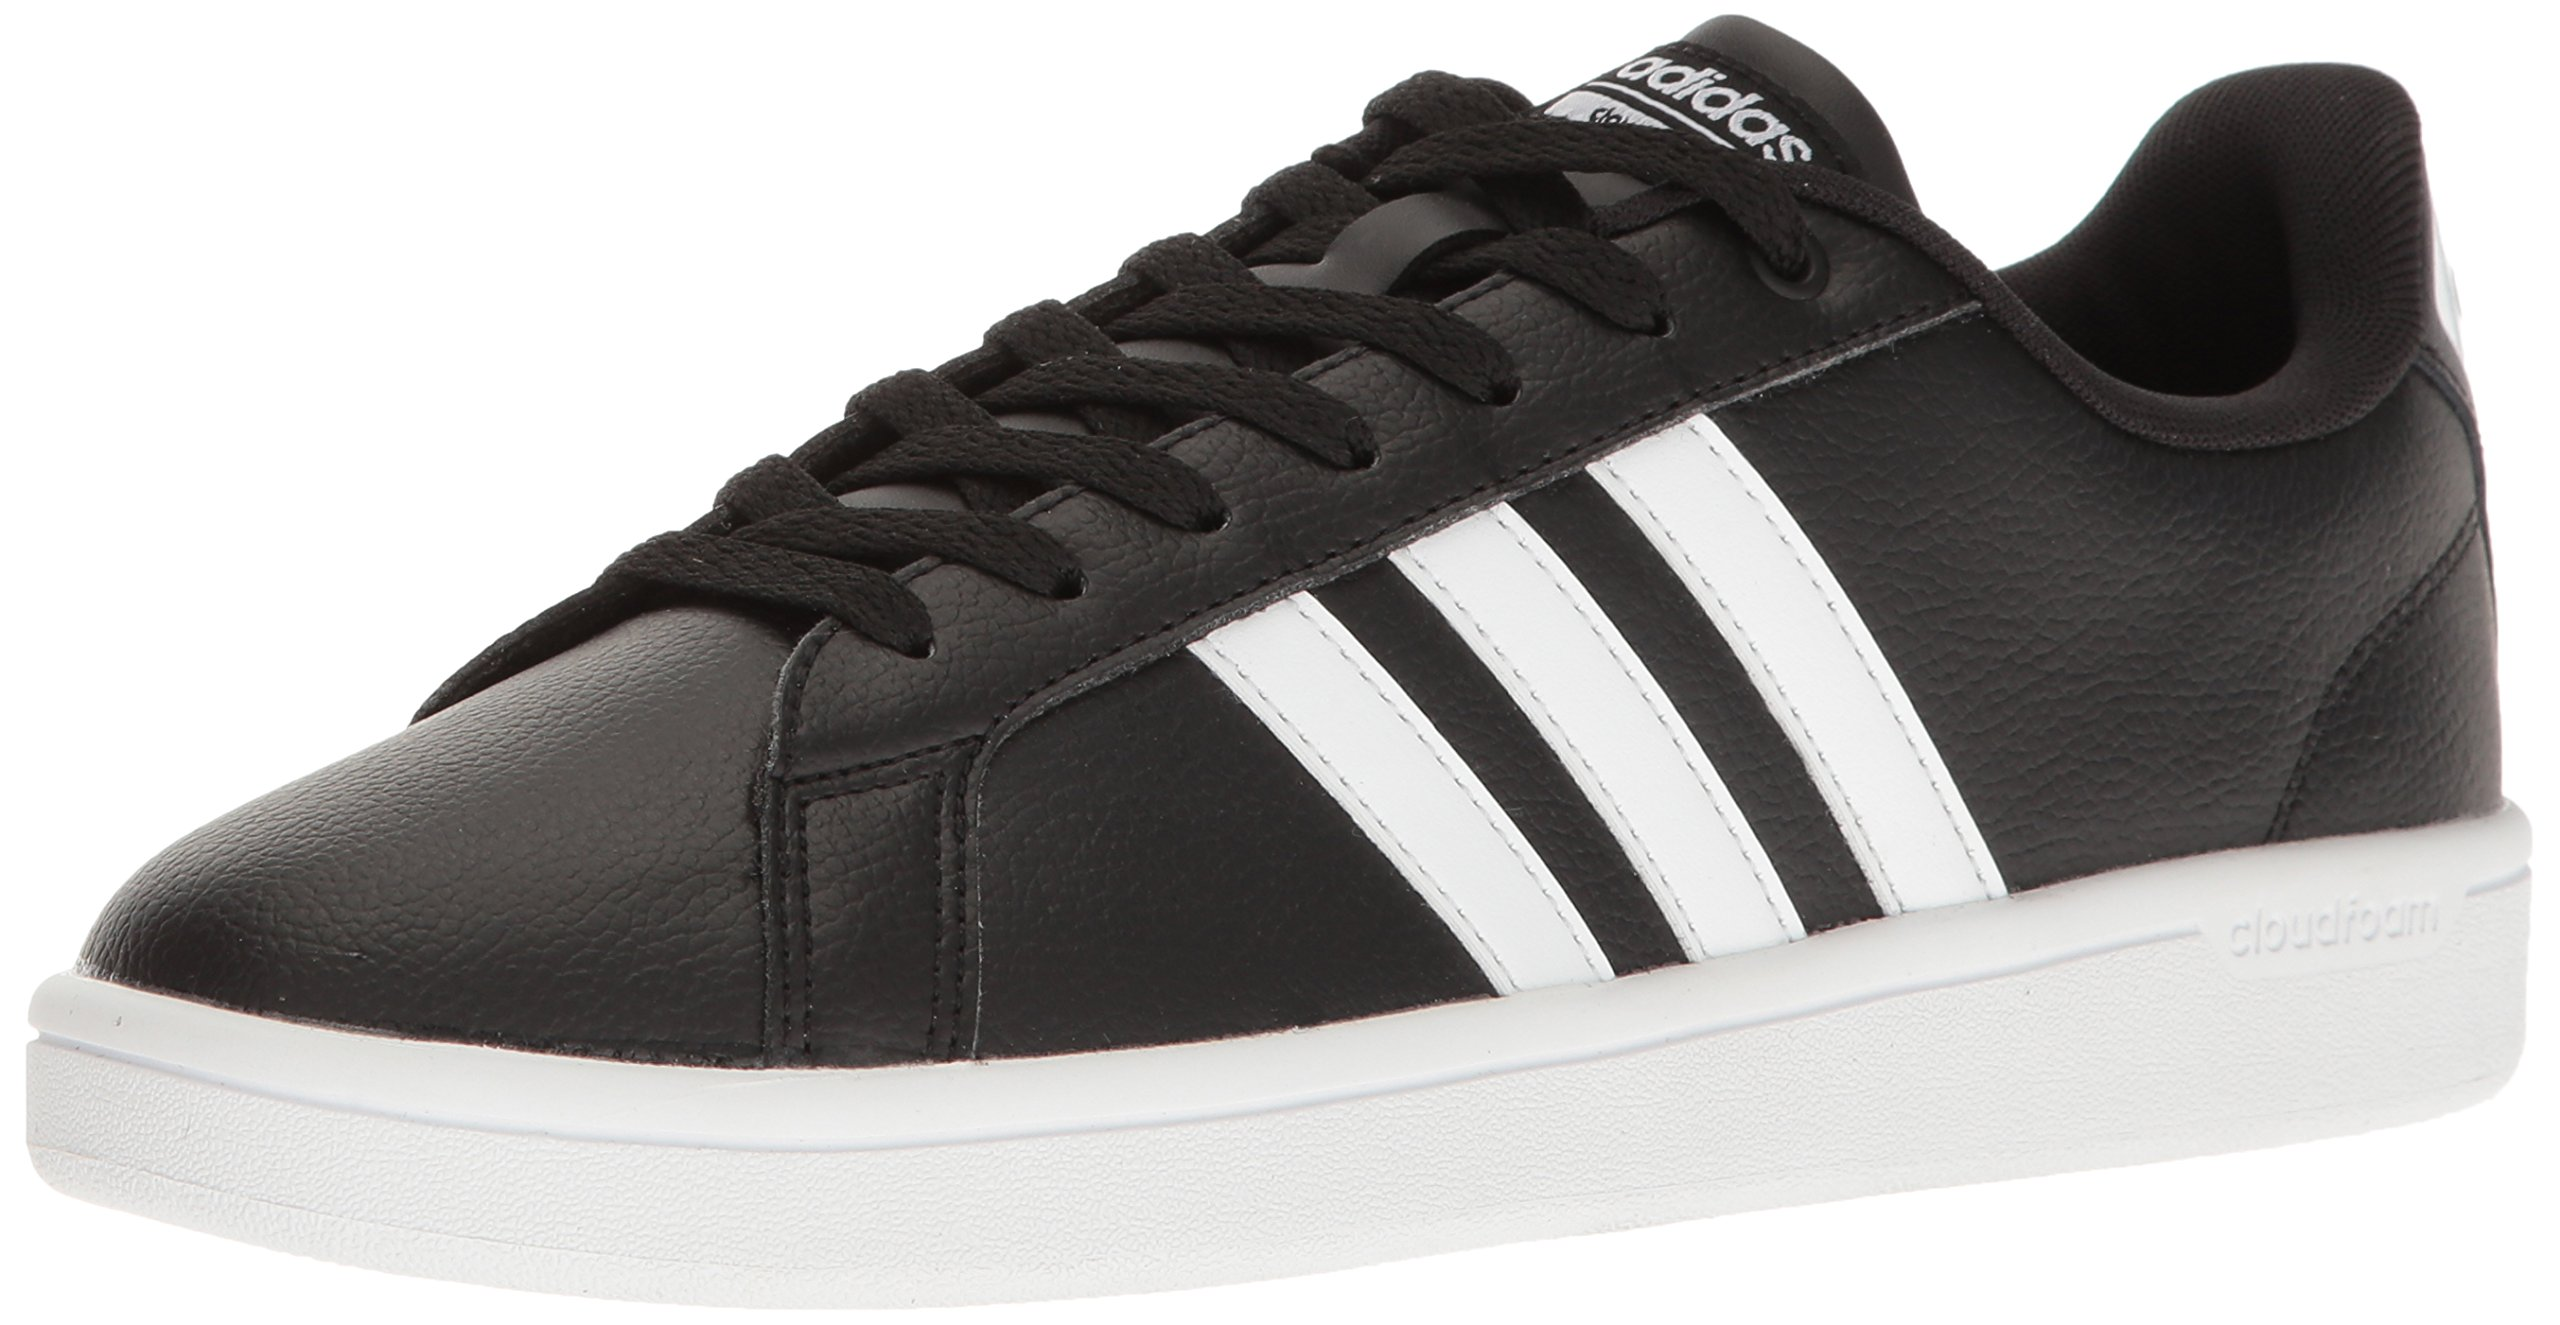 Adidas Womens Shoes Baseline